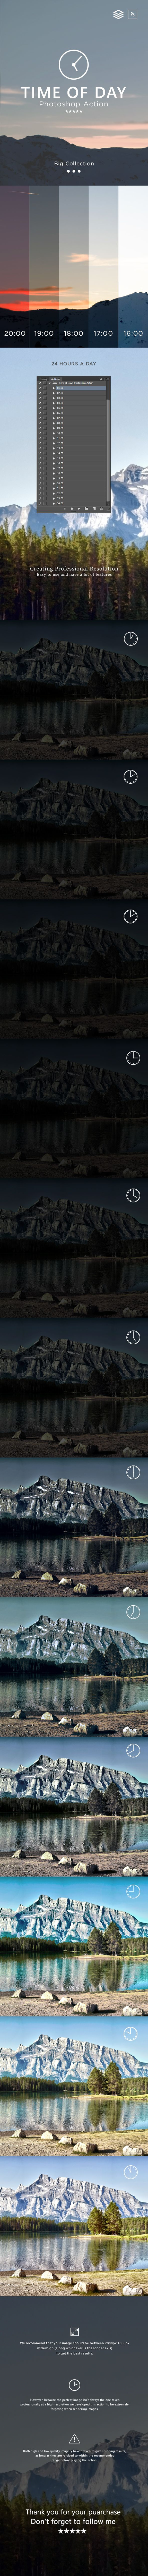 Time of Day Photoshop Action — Photoshop ATN #effect #add on • Available here ➝ https://graphicriver.net/item/time-of-day-photoshop-action/20595764?ref=pxcr